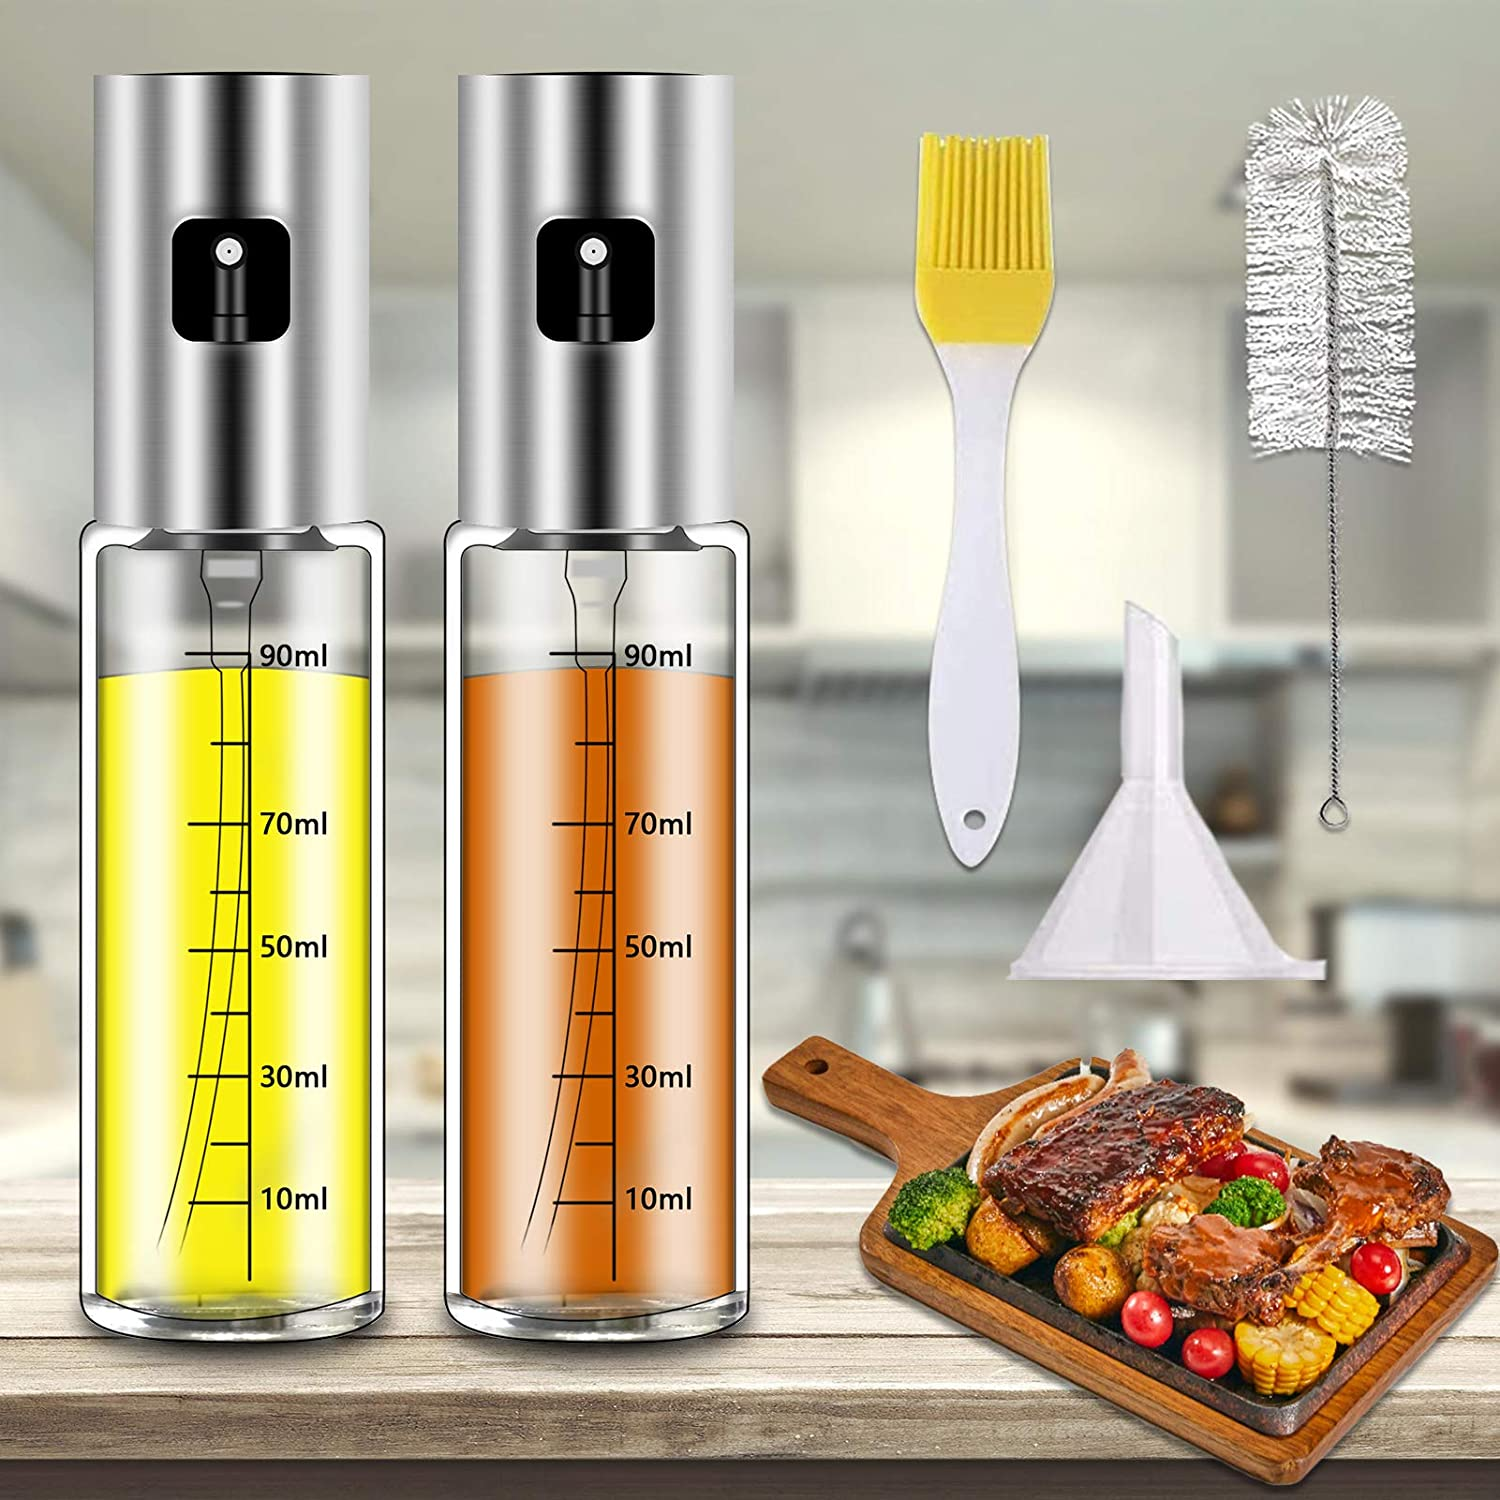 Oil Sprayer For Cooking, Oil Mister Food-grade 100ml / 3.4 Oz Transparent Olive Spray Glass Bottle With Scales Fine Mist Sauce Dispenser (2 Sprayers, 1funnel, 1 cleaning brush, 1 oil brush include)